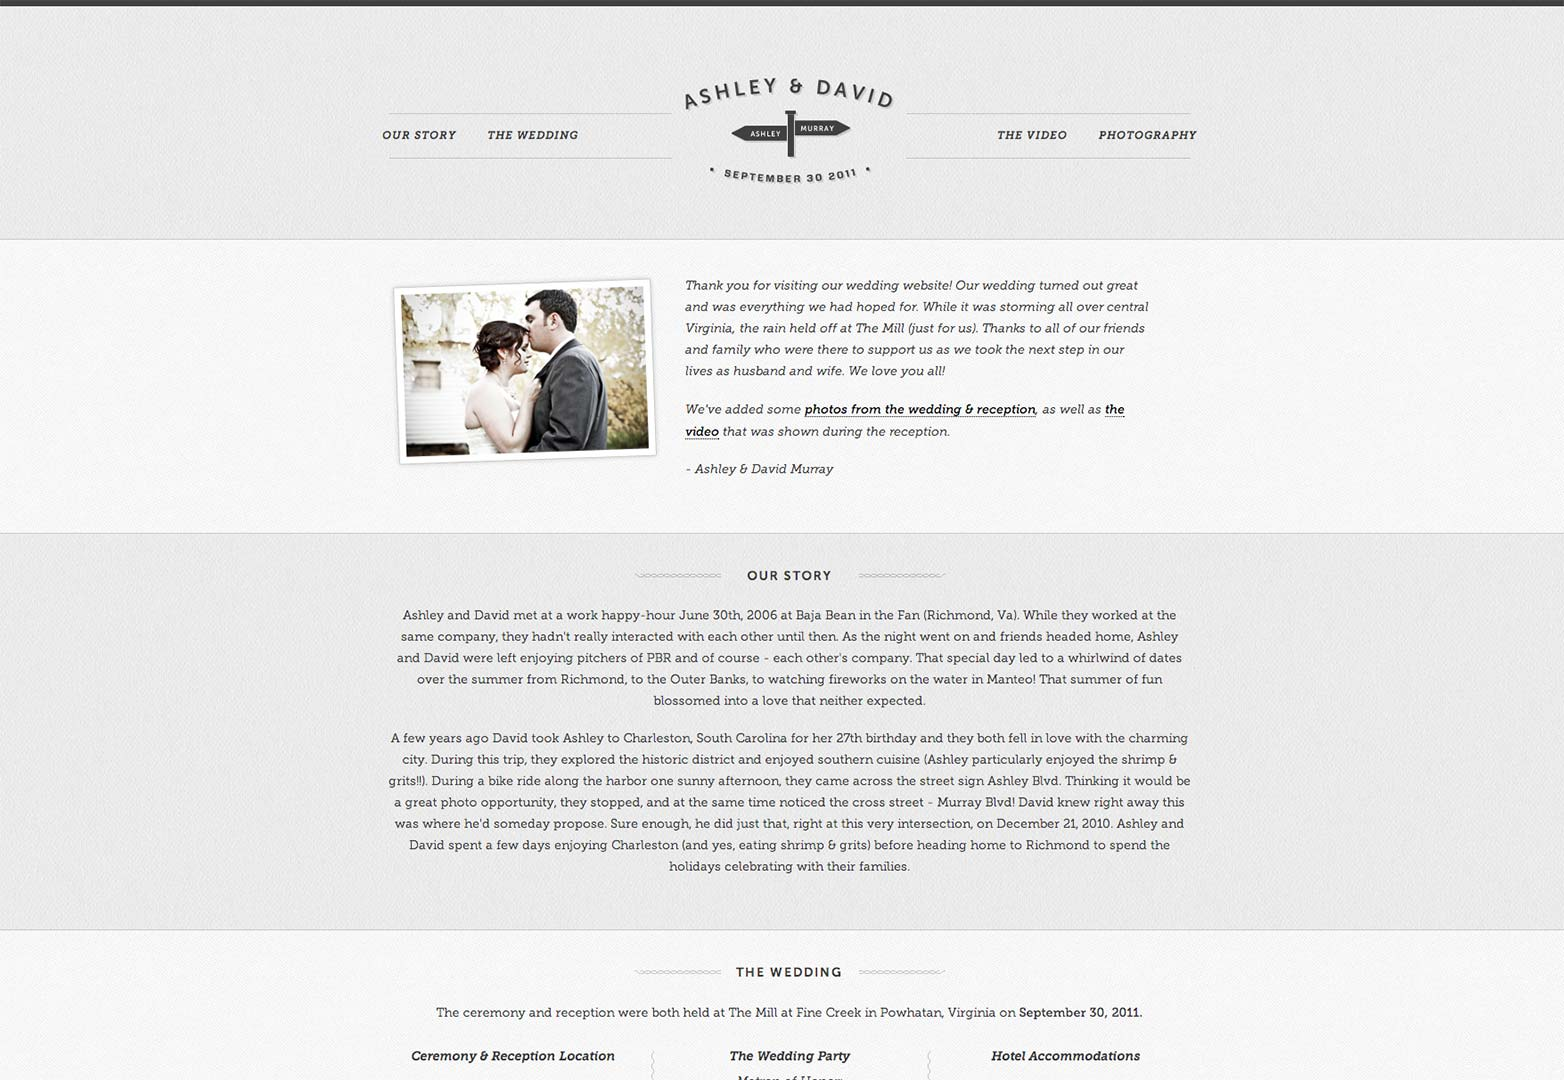 Rummy David Wedding Websites Webdesigner Depot Wedding Website Examples Wording Wedding Website Examples Knot Ashley wedding Wedding Website Examples